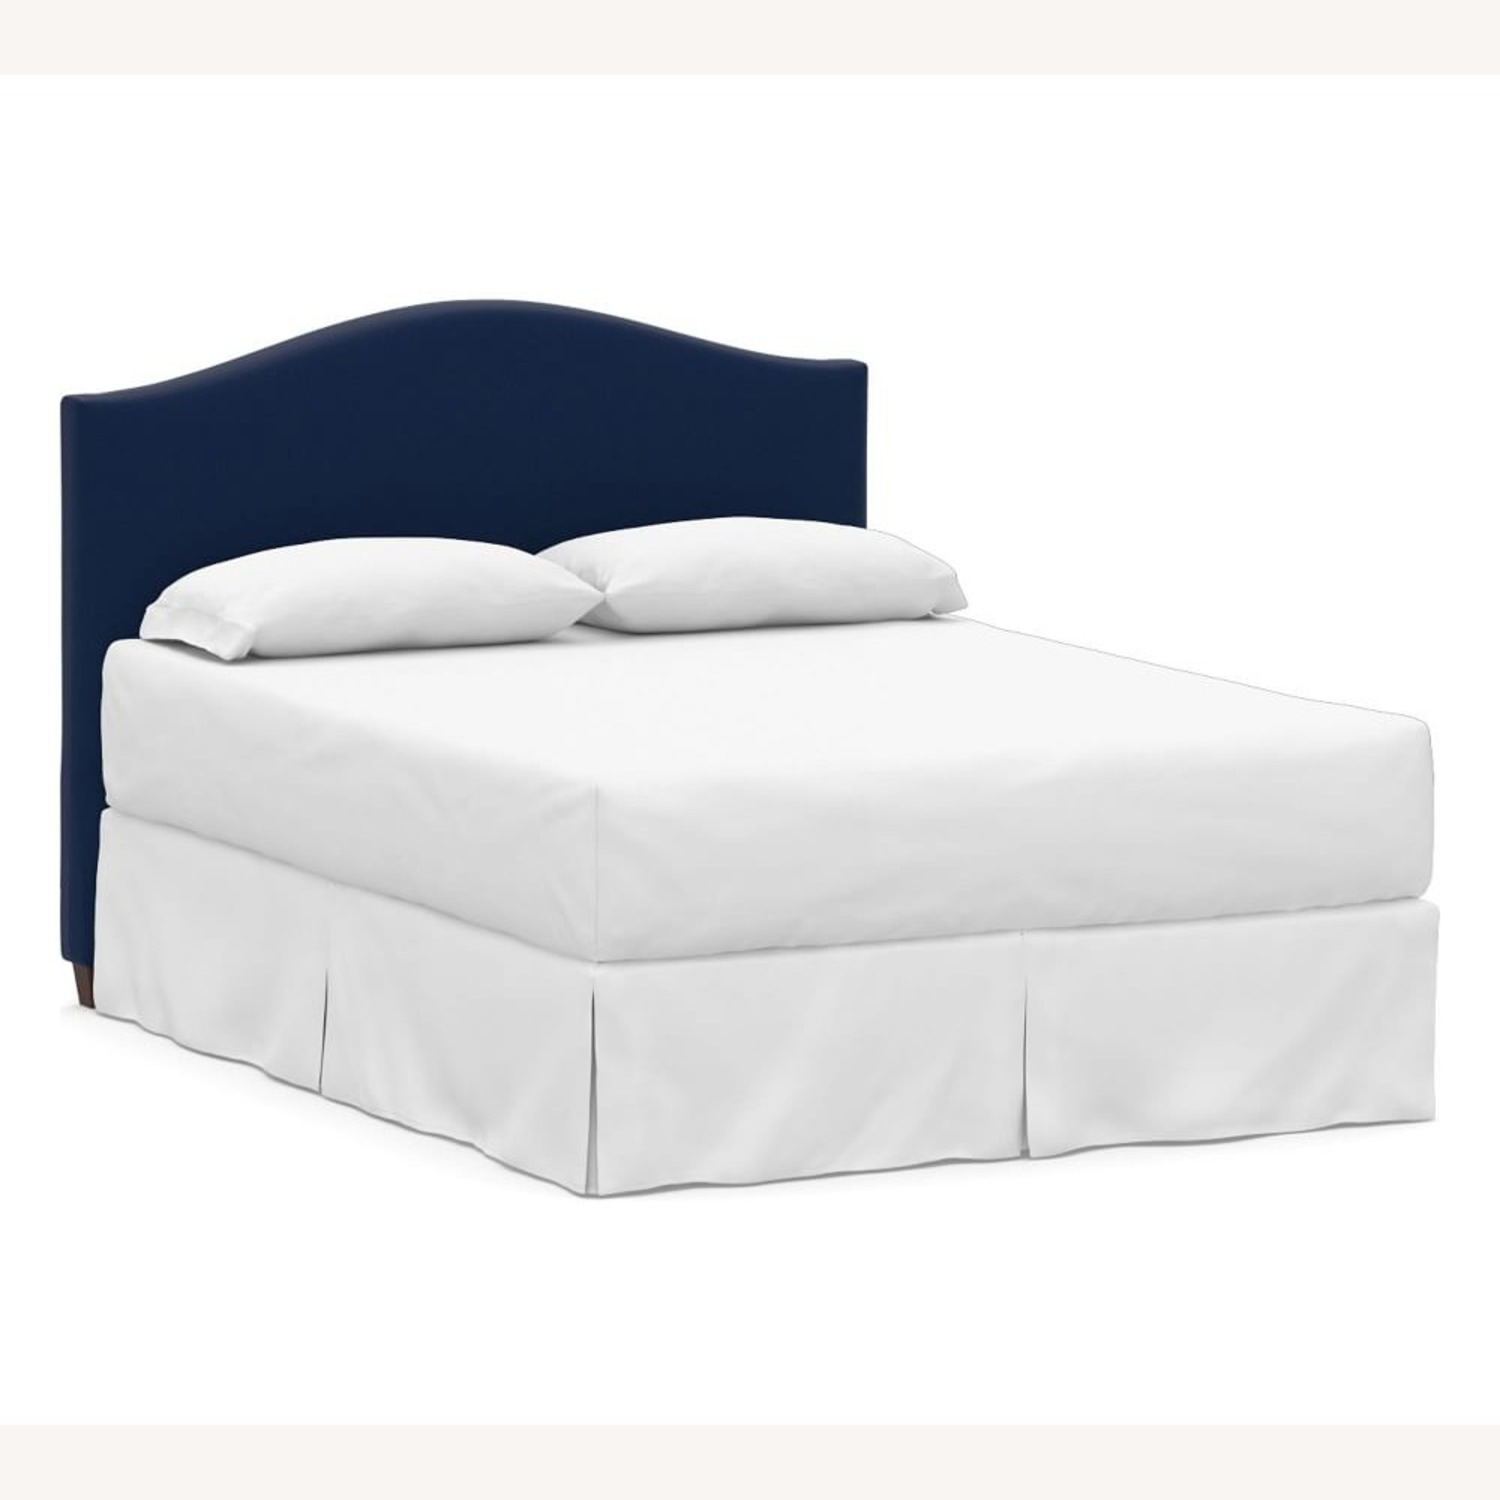 Pottery Barn Raleigh Curved Low Headboard - image-2